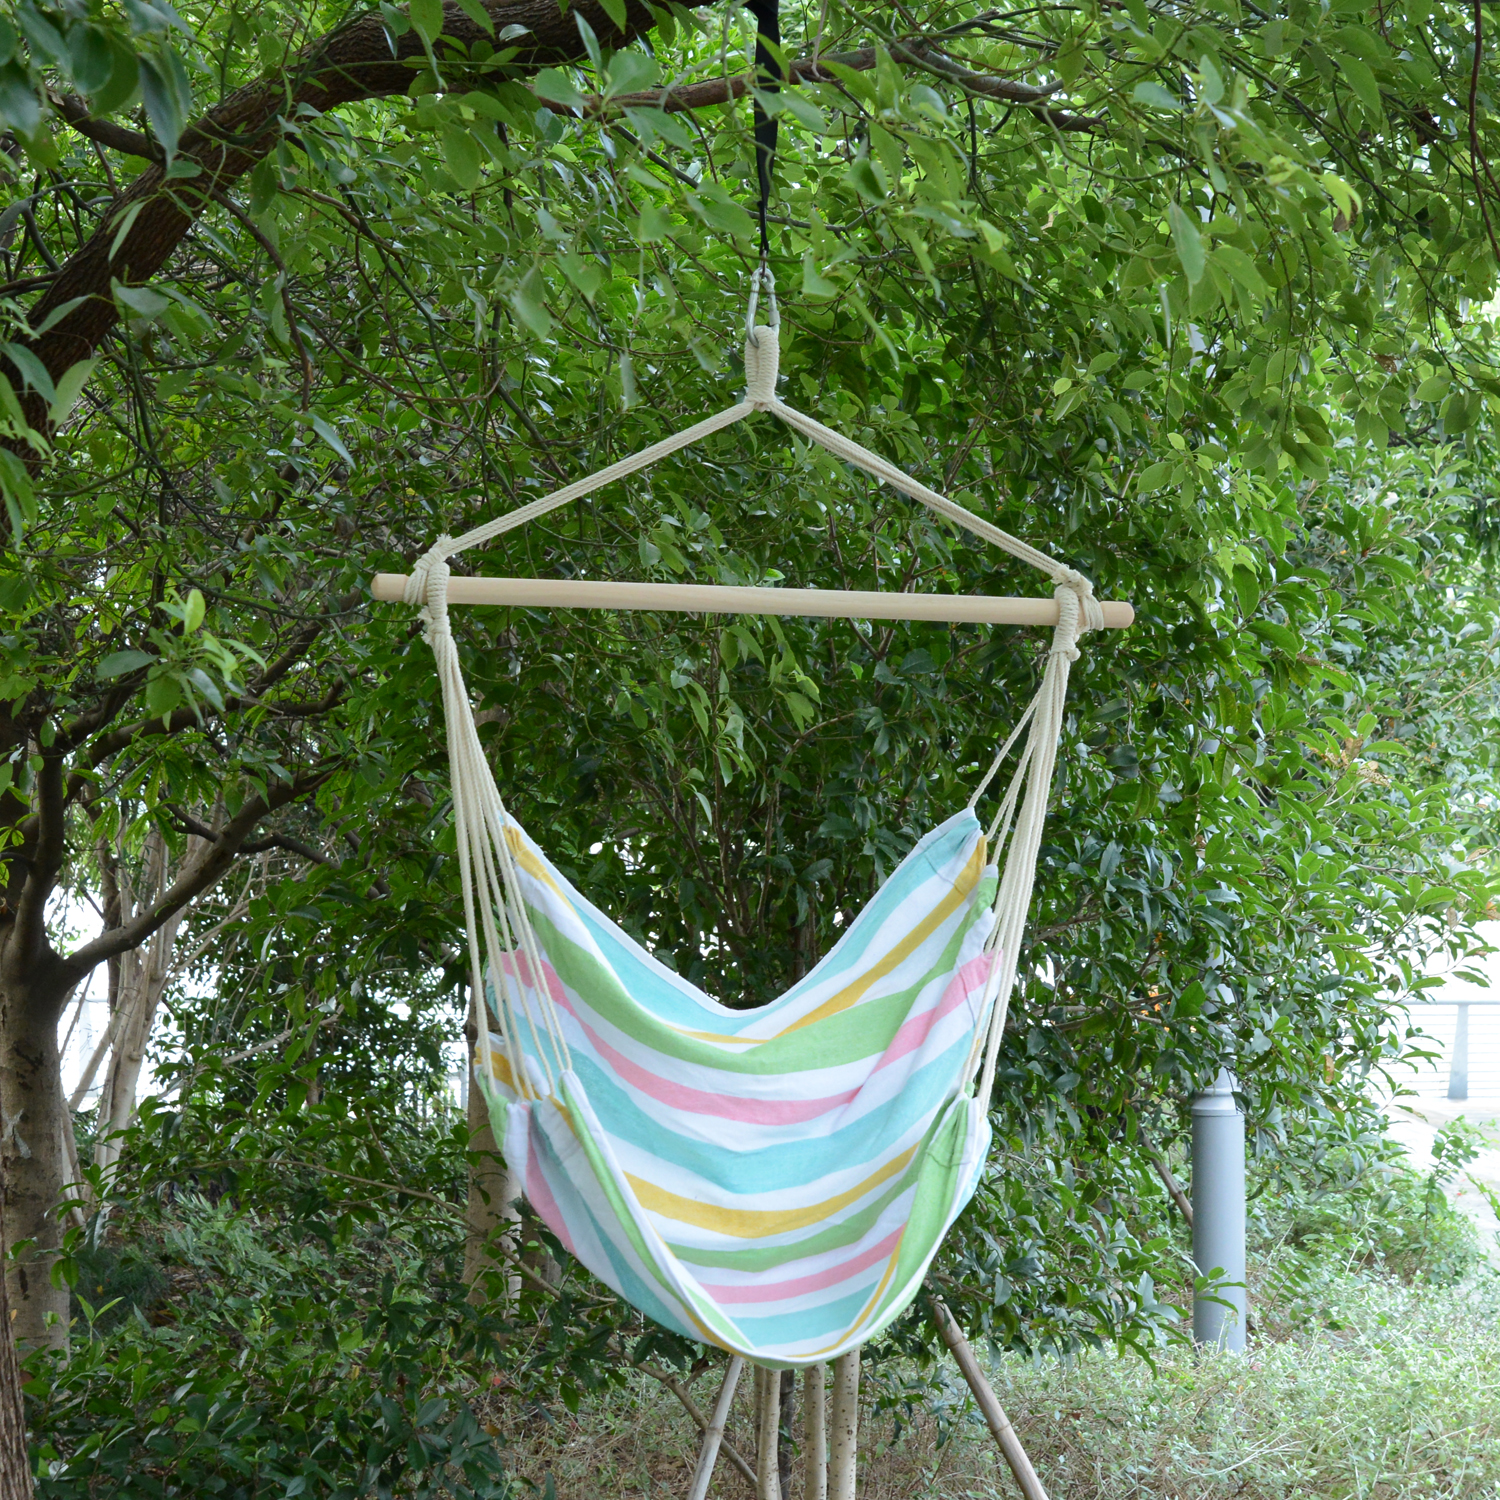 Image of £15.99 Outsunny Hanging Swing Chair, Cotton Cloth Size: 100Lx90W cm / Outdoor Hammock Rope Chair Garden Yard Patio Seat Wooden w Ropes (Green) Green 84A-017GN 5056029890424